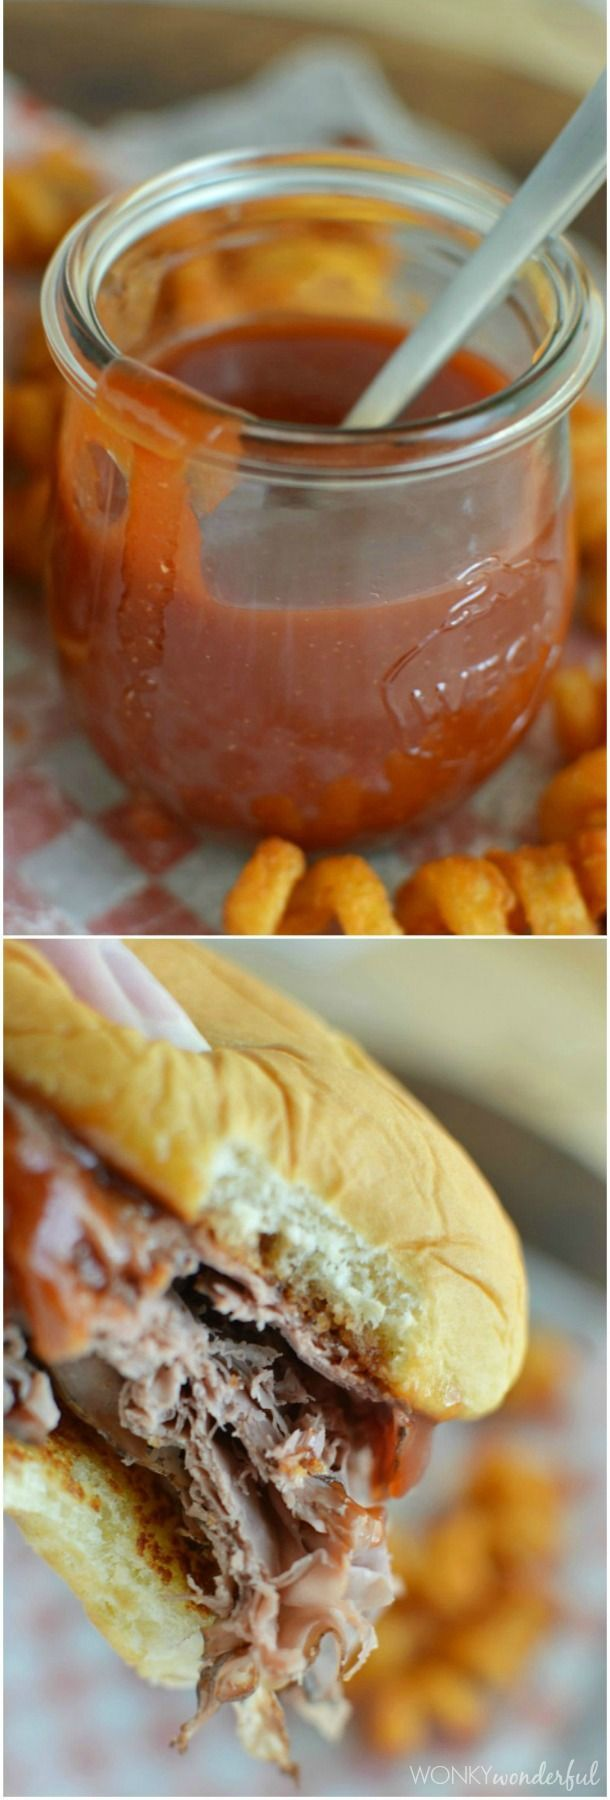 Arby's Sauce Copycat Recipe ~ Get your Arby's Roast Beef fix without leaving home! With this Copycat Arby's Sauce Recipe you can make your own version of the fast food favorite... So skip the fast food joint and dine at home. Where the fries are HOT and the sandwich is FRESH!